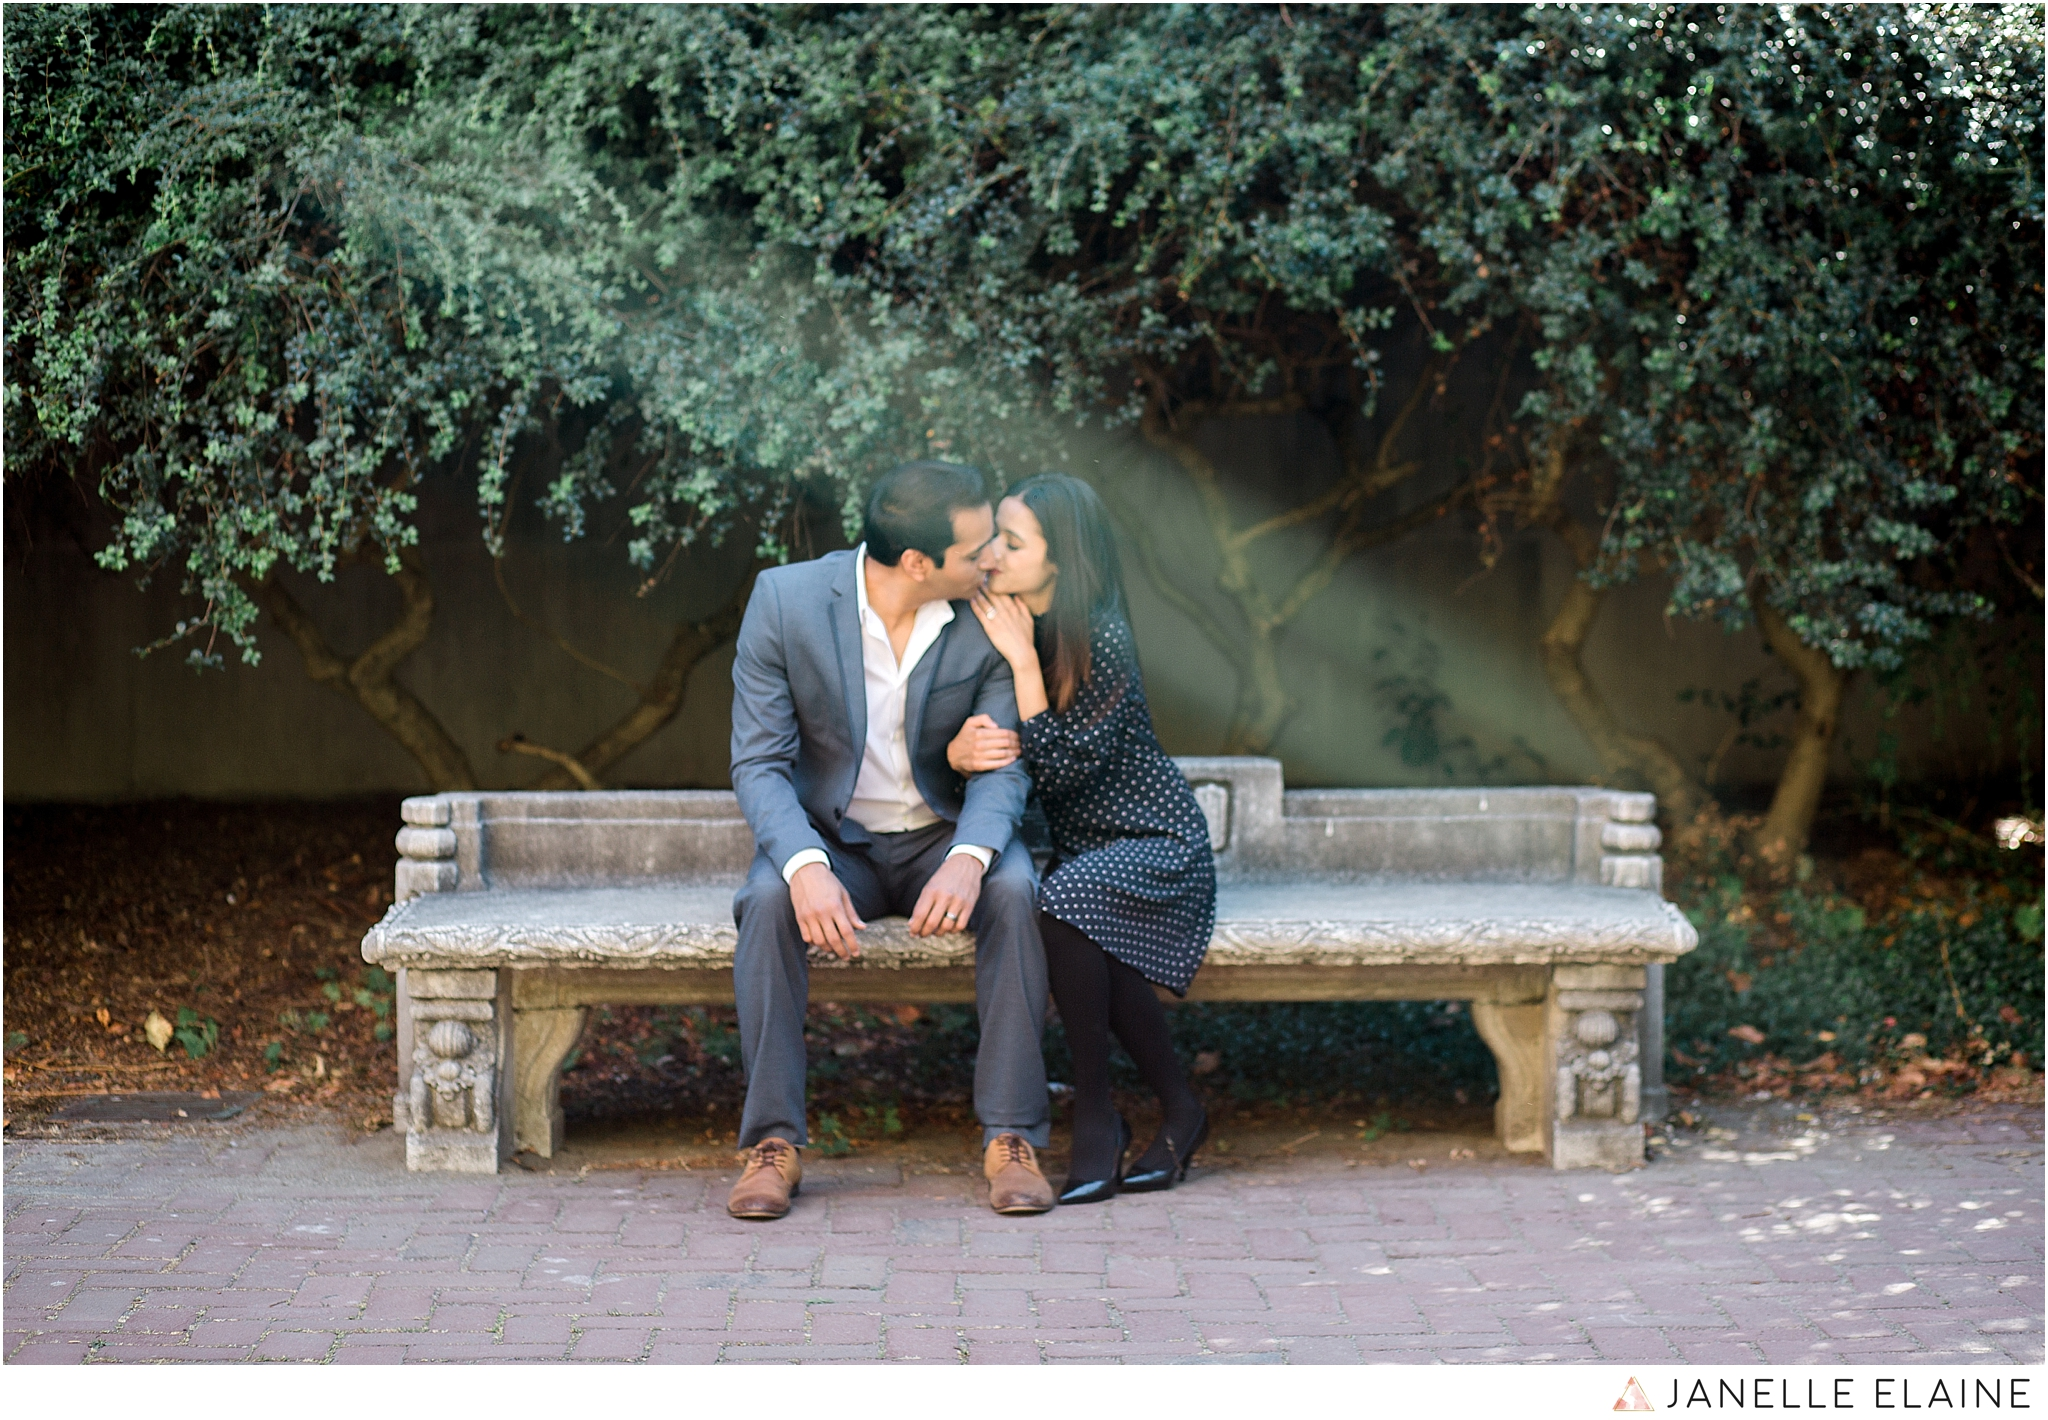 janelle elaine photography-zain and umema-seattle-uw-red square-engagement-photographer-67.jpg